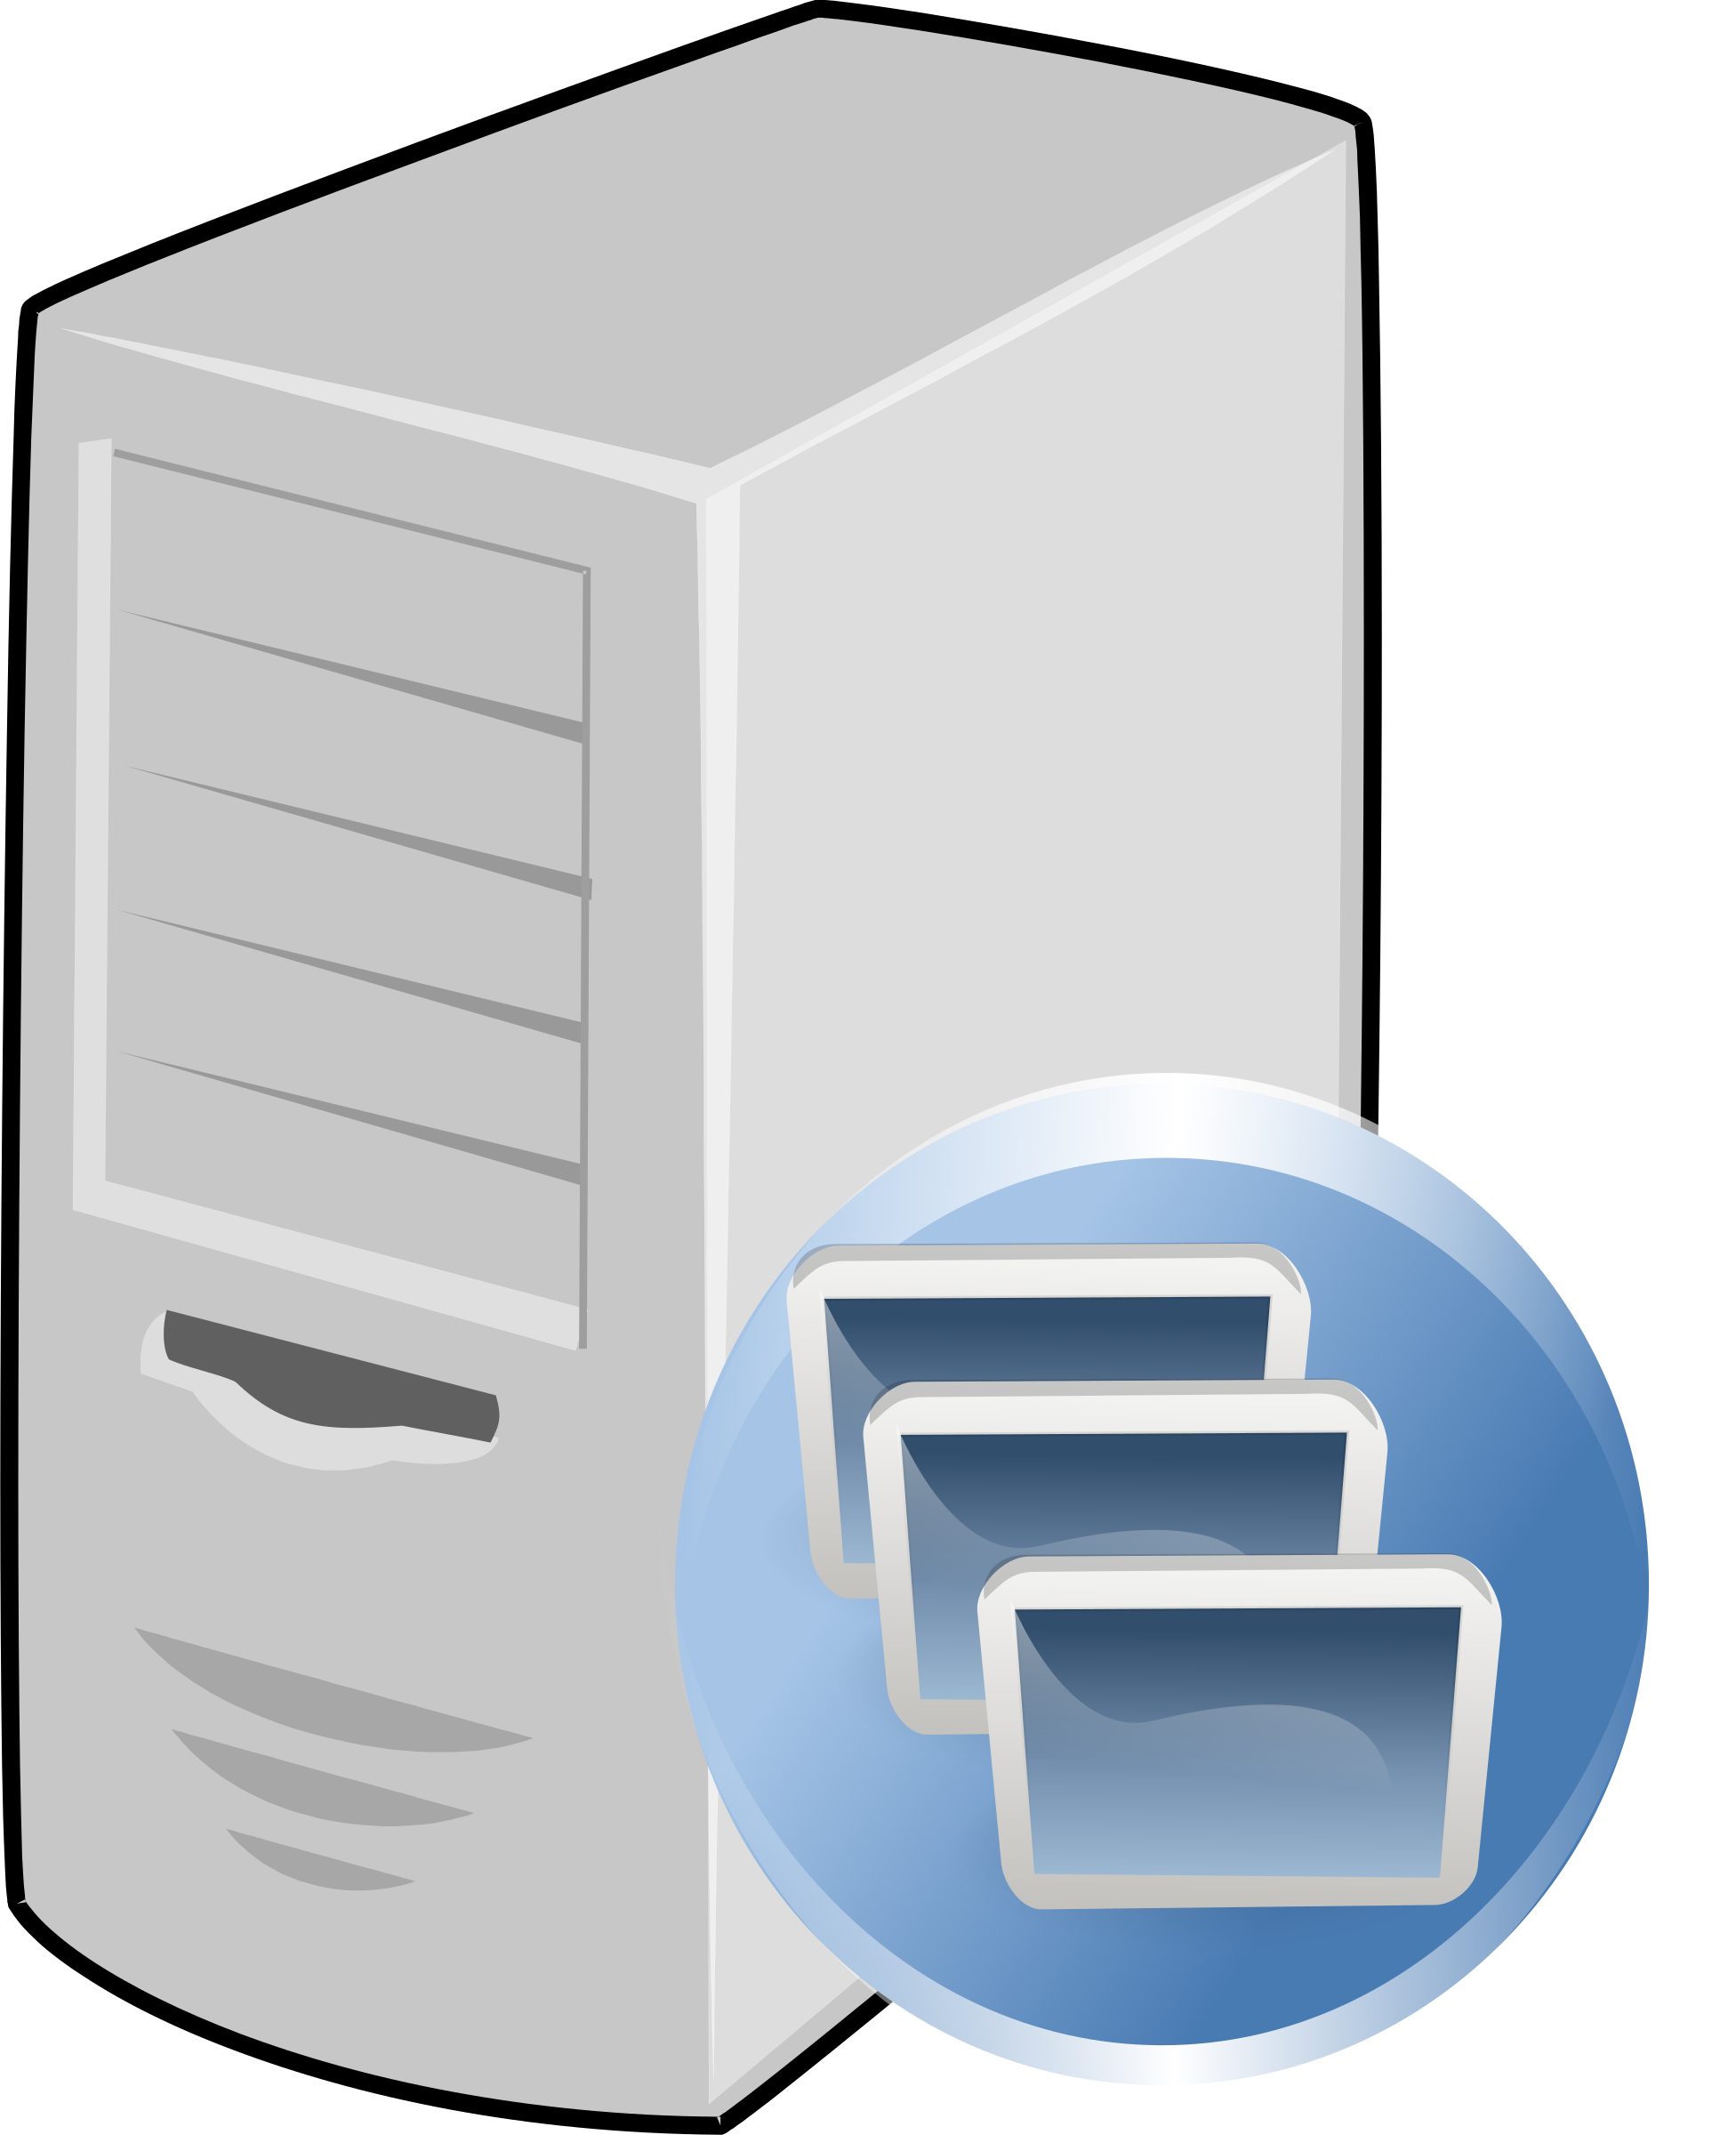 Application icons png free. Server clipart server icon picture transparent library